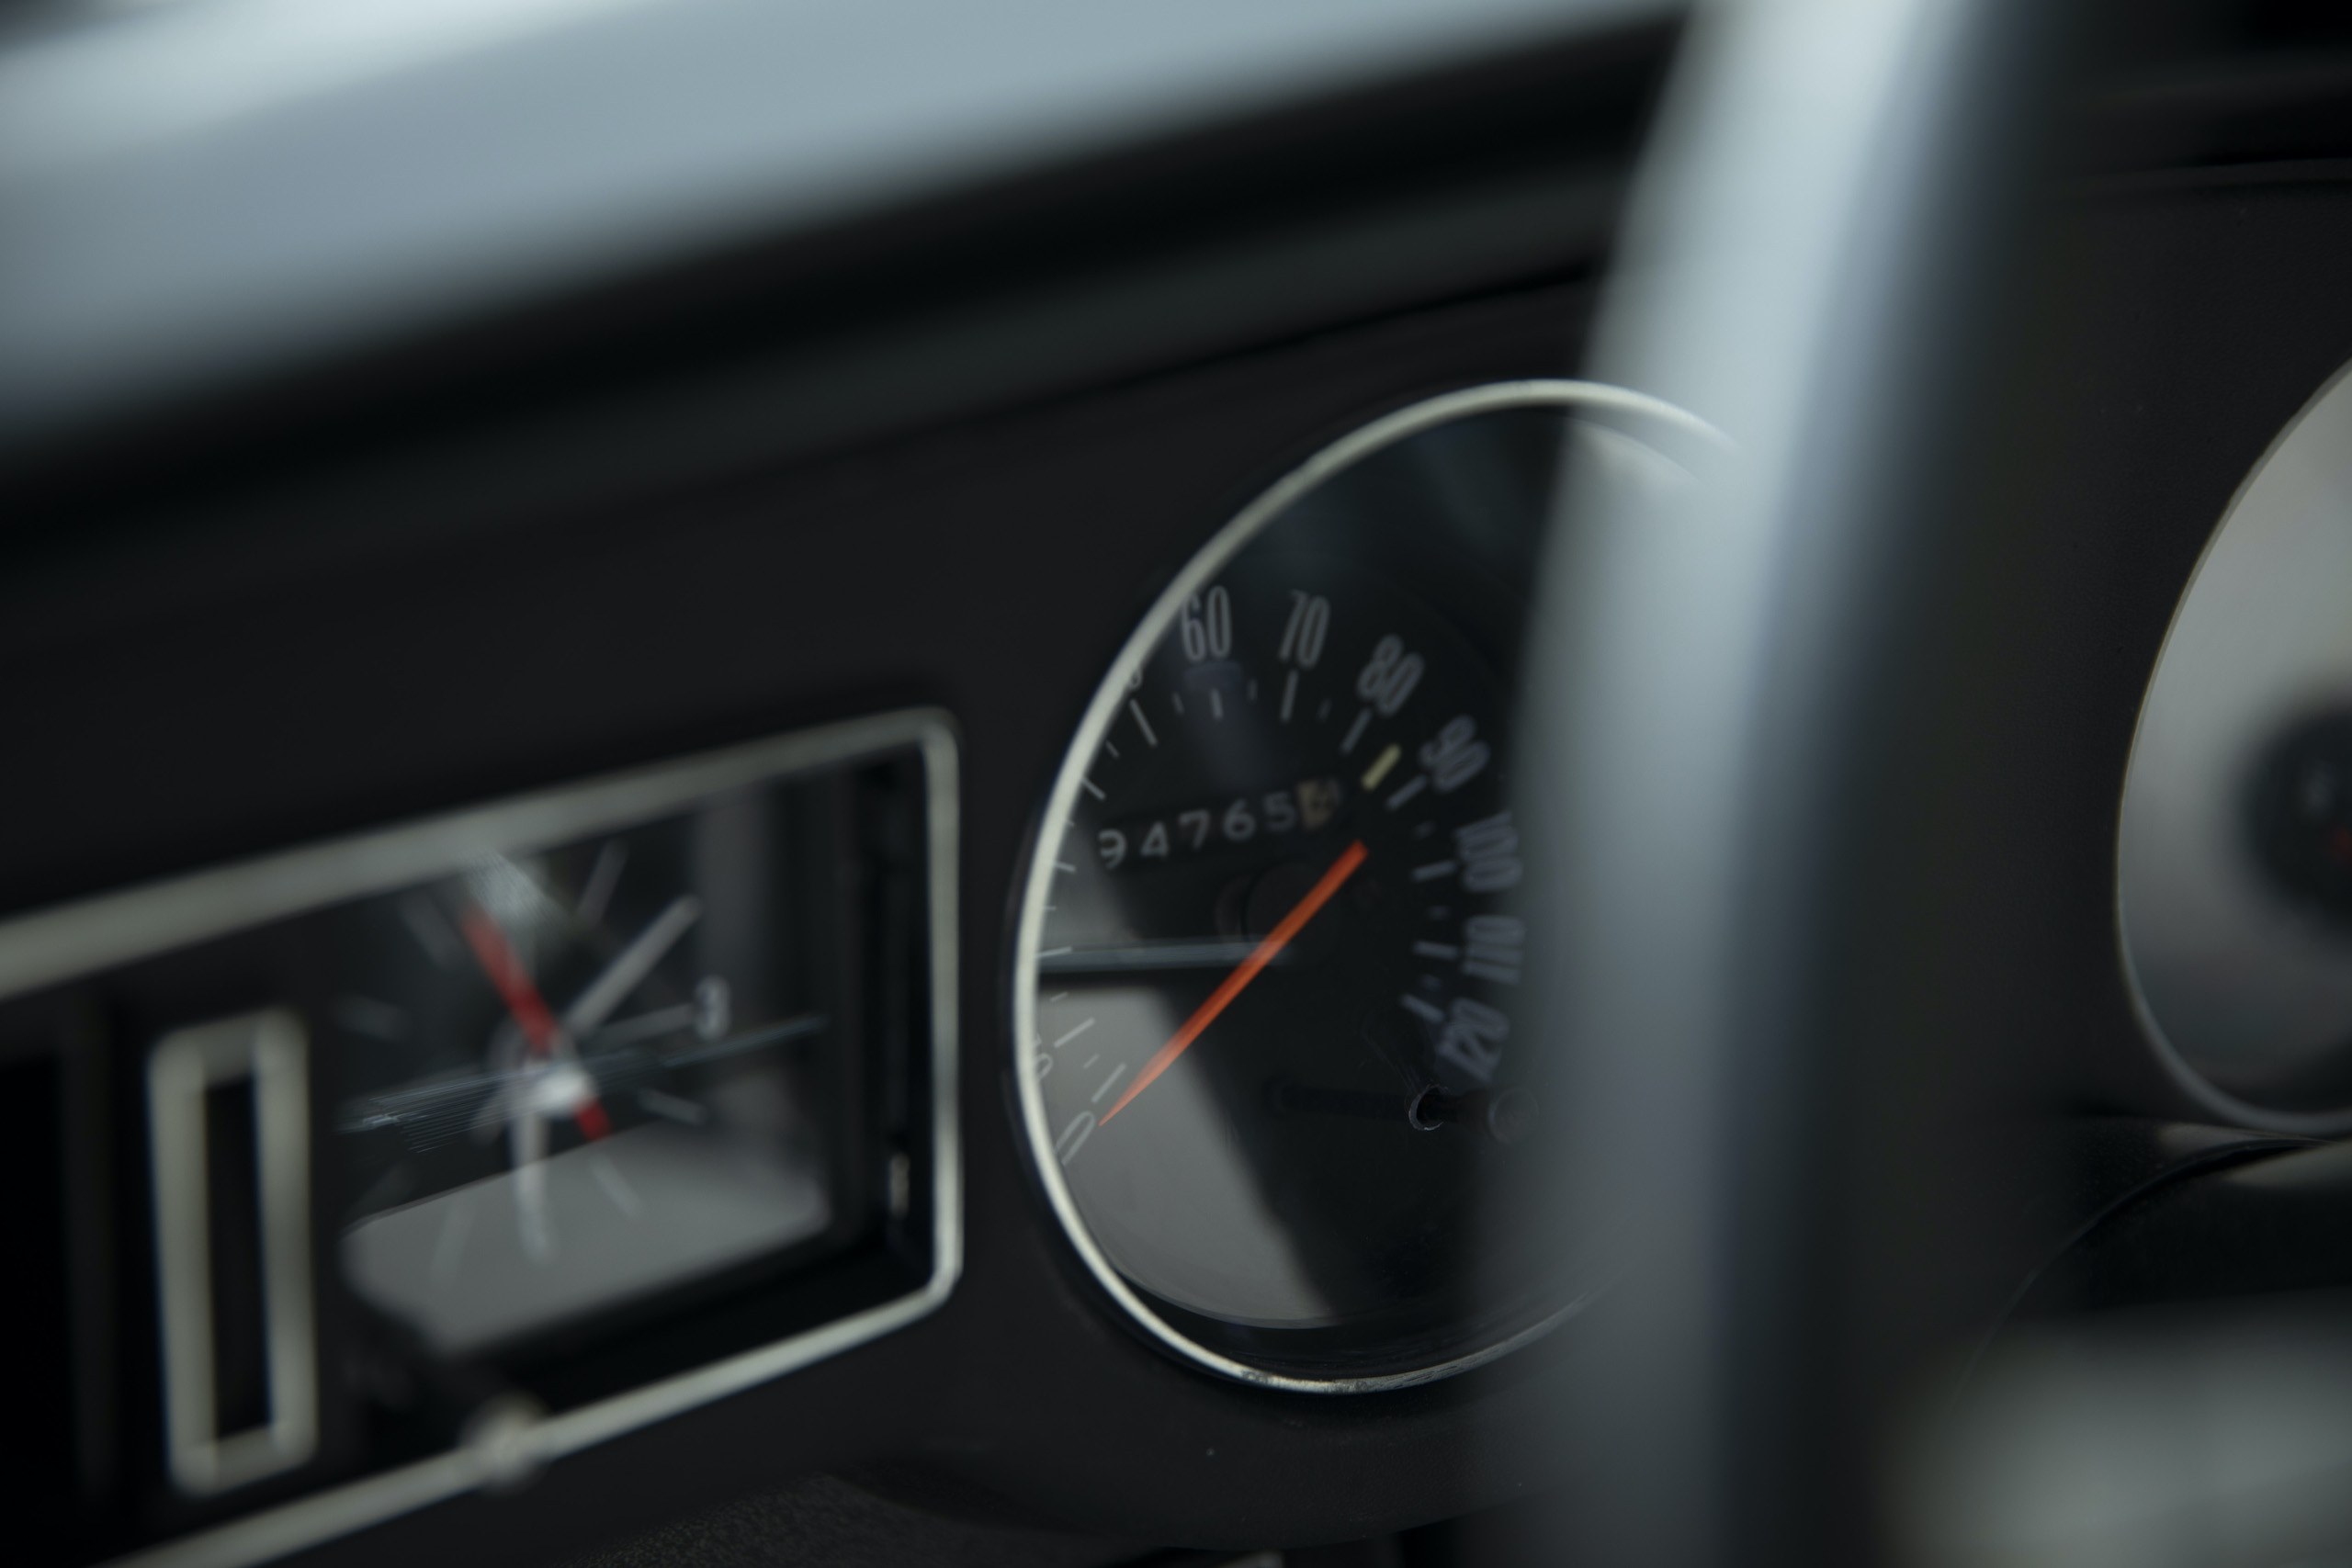 1973 Buick GS Stage 1 gran sport coupe speedometer